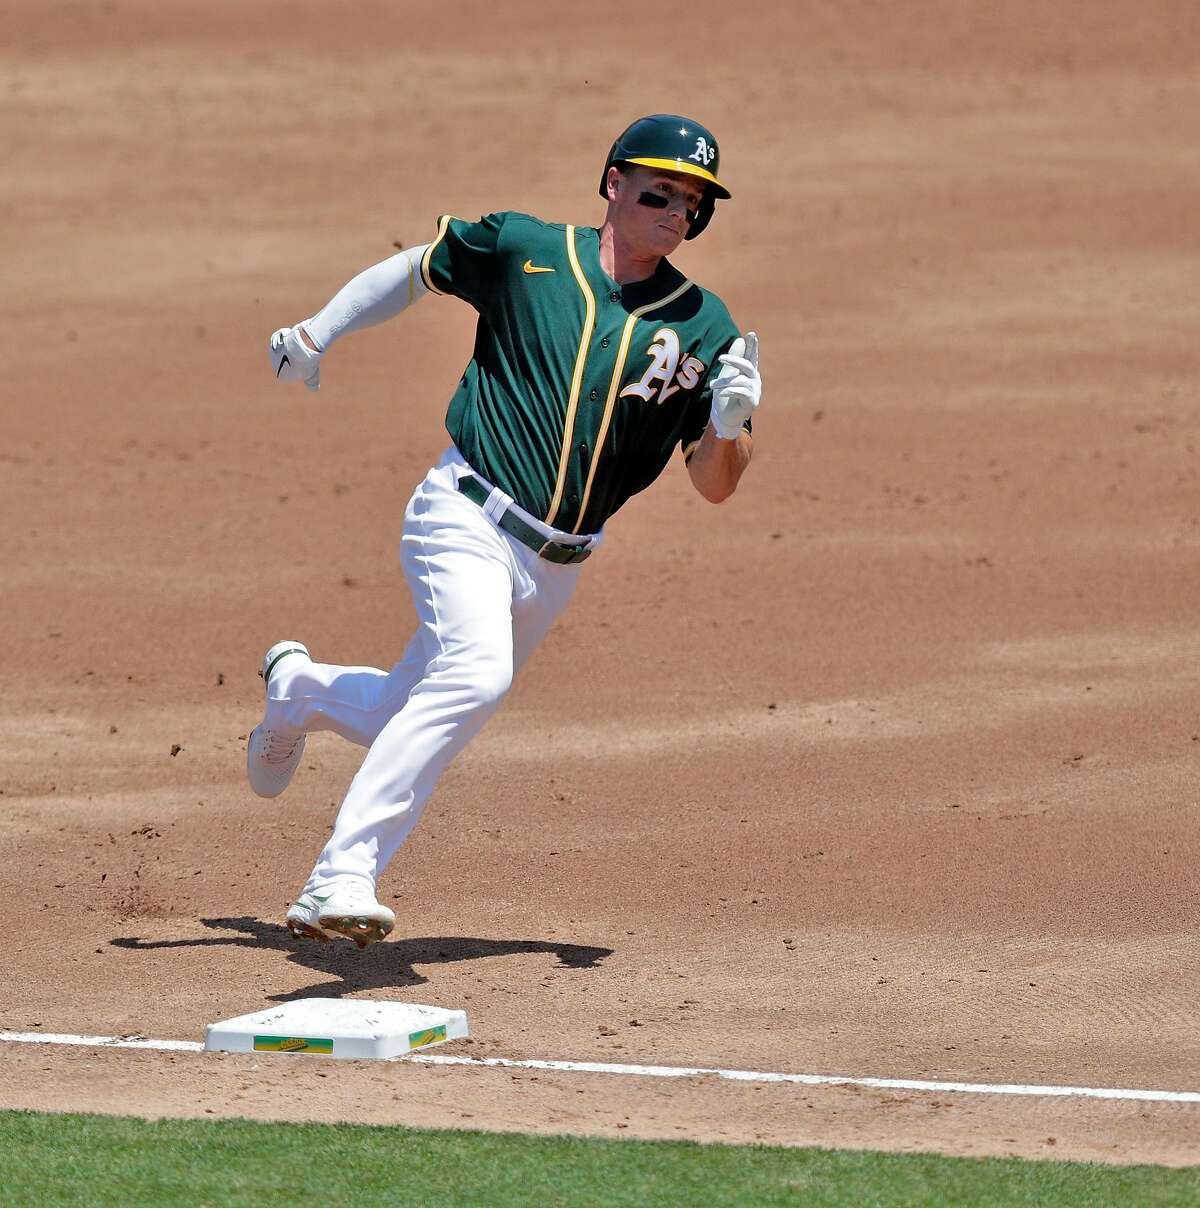 A's third baseman Matt Chapman (26) rounds third and scores on a Mark Canha (20) single in the first as the Oakland Athletics played the Los Angeles Angels of Anaheim at the Coliseum in Oakland, Calif., on Sunday, July 26, 2020.